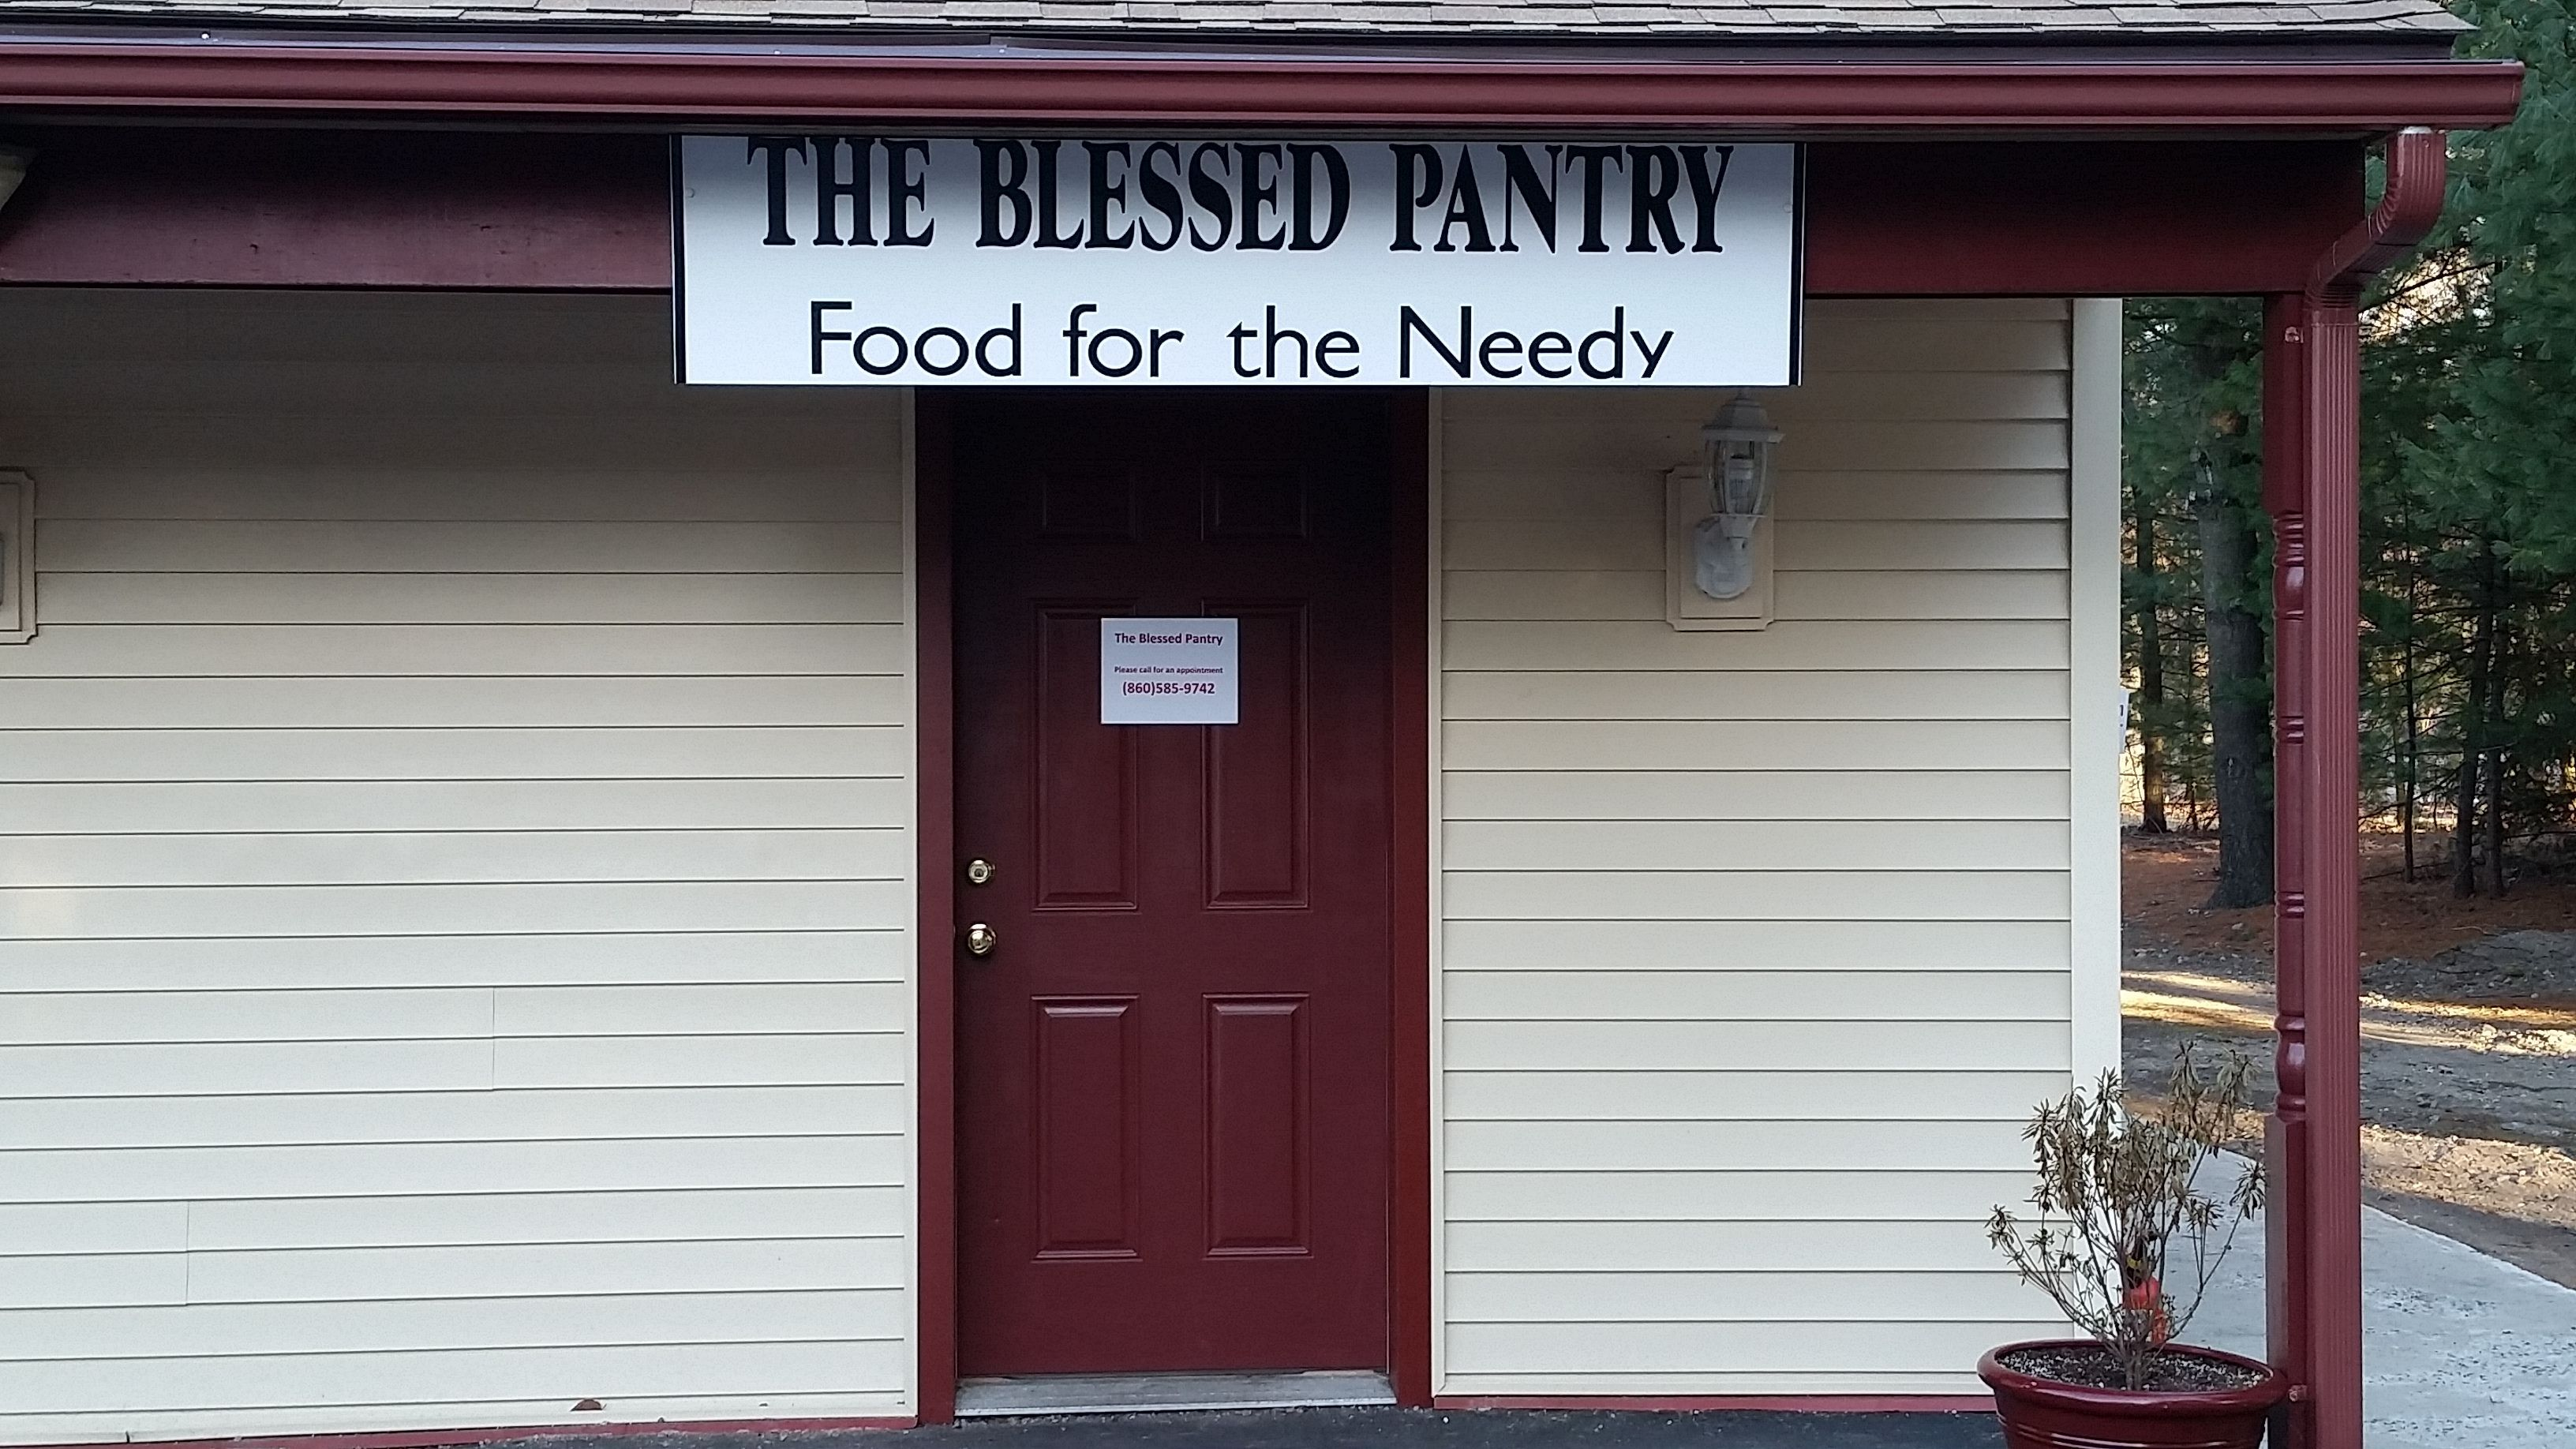 The Blessed Pantry